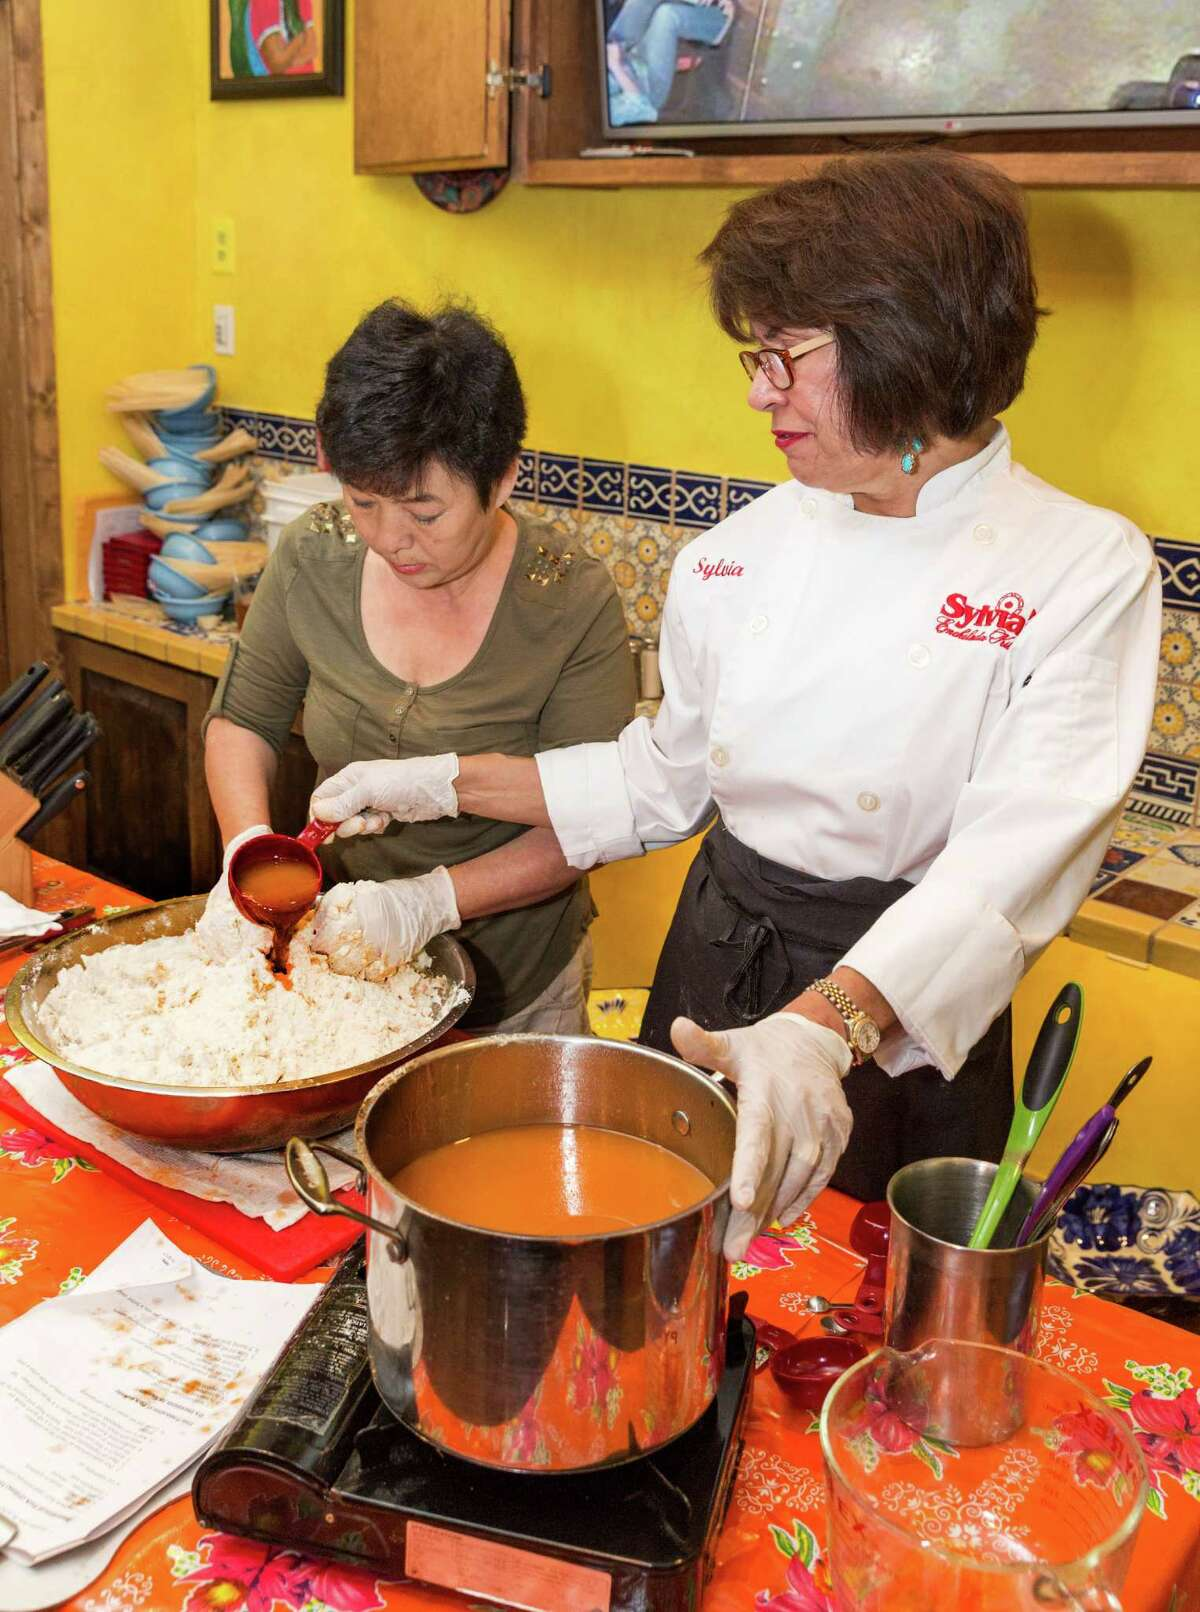 Sylvia Casares, owner of Sylvia's and Sylvia's Enchilada Kitchen restaurants, conducts a tamale-making class at her new restaurant Sylvia's, 1140 Eldridge Parkway. Classmember Suk Yi helps mix the Maseca mixture as Casares slowly adds the stock. Sylvia Casares, owner of Sylvia's and Sylvia's Enchilada Kitchen restaurants, conducts a tamale-making class at her new restaurant Sylvia's, 1140 Eldridge Parkway. Classmember Suk Yi helps mix the Maseca mixture as Casares slowly adds the stock.